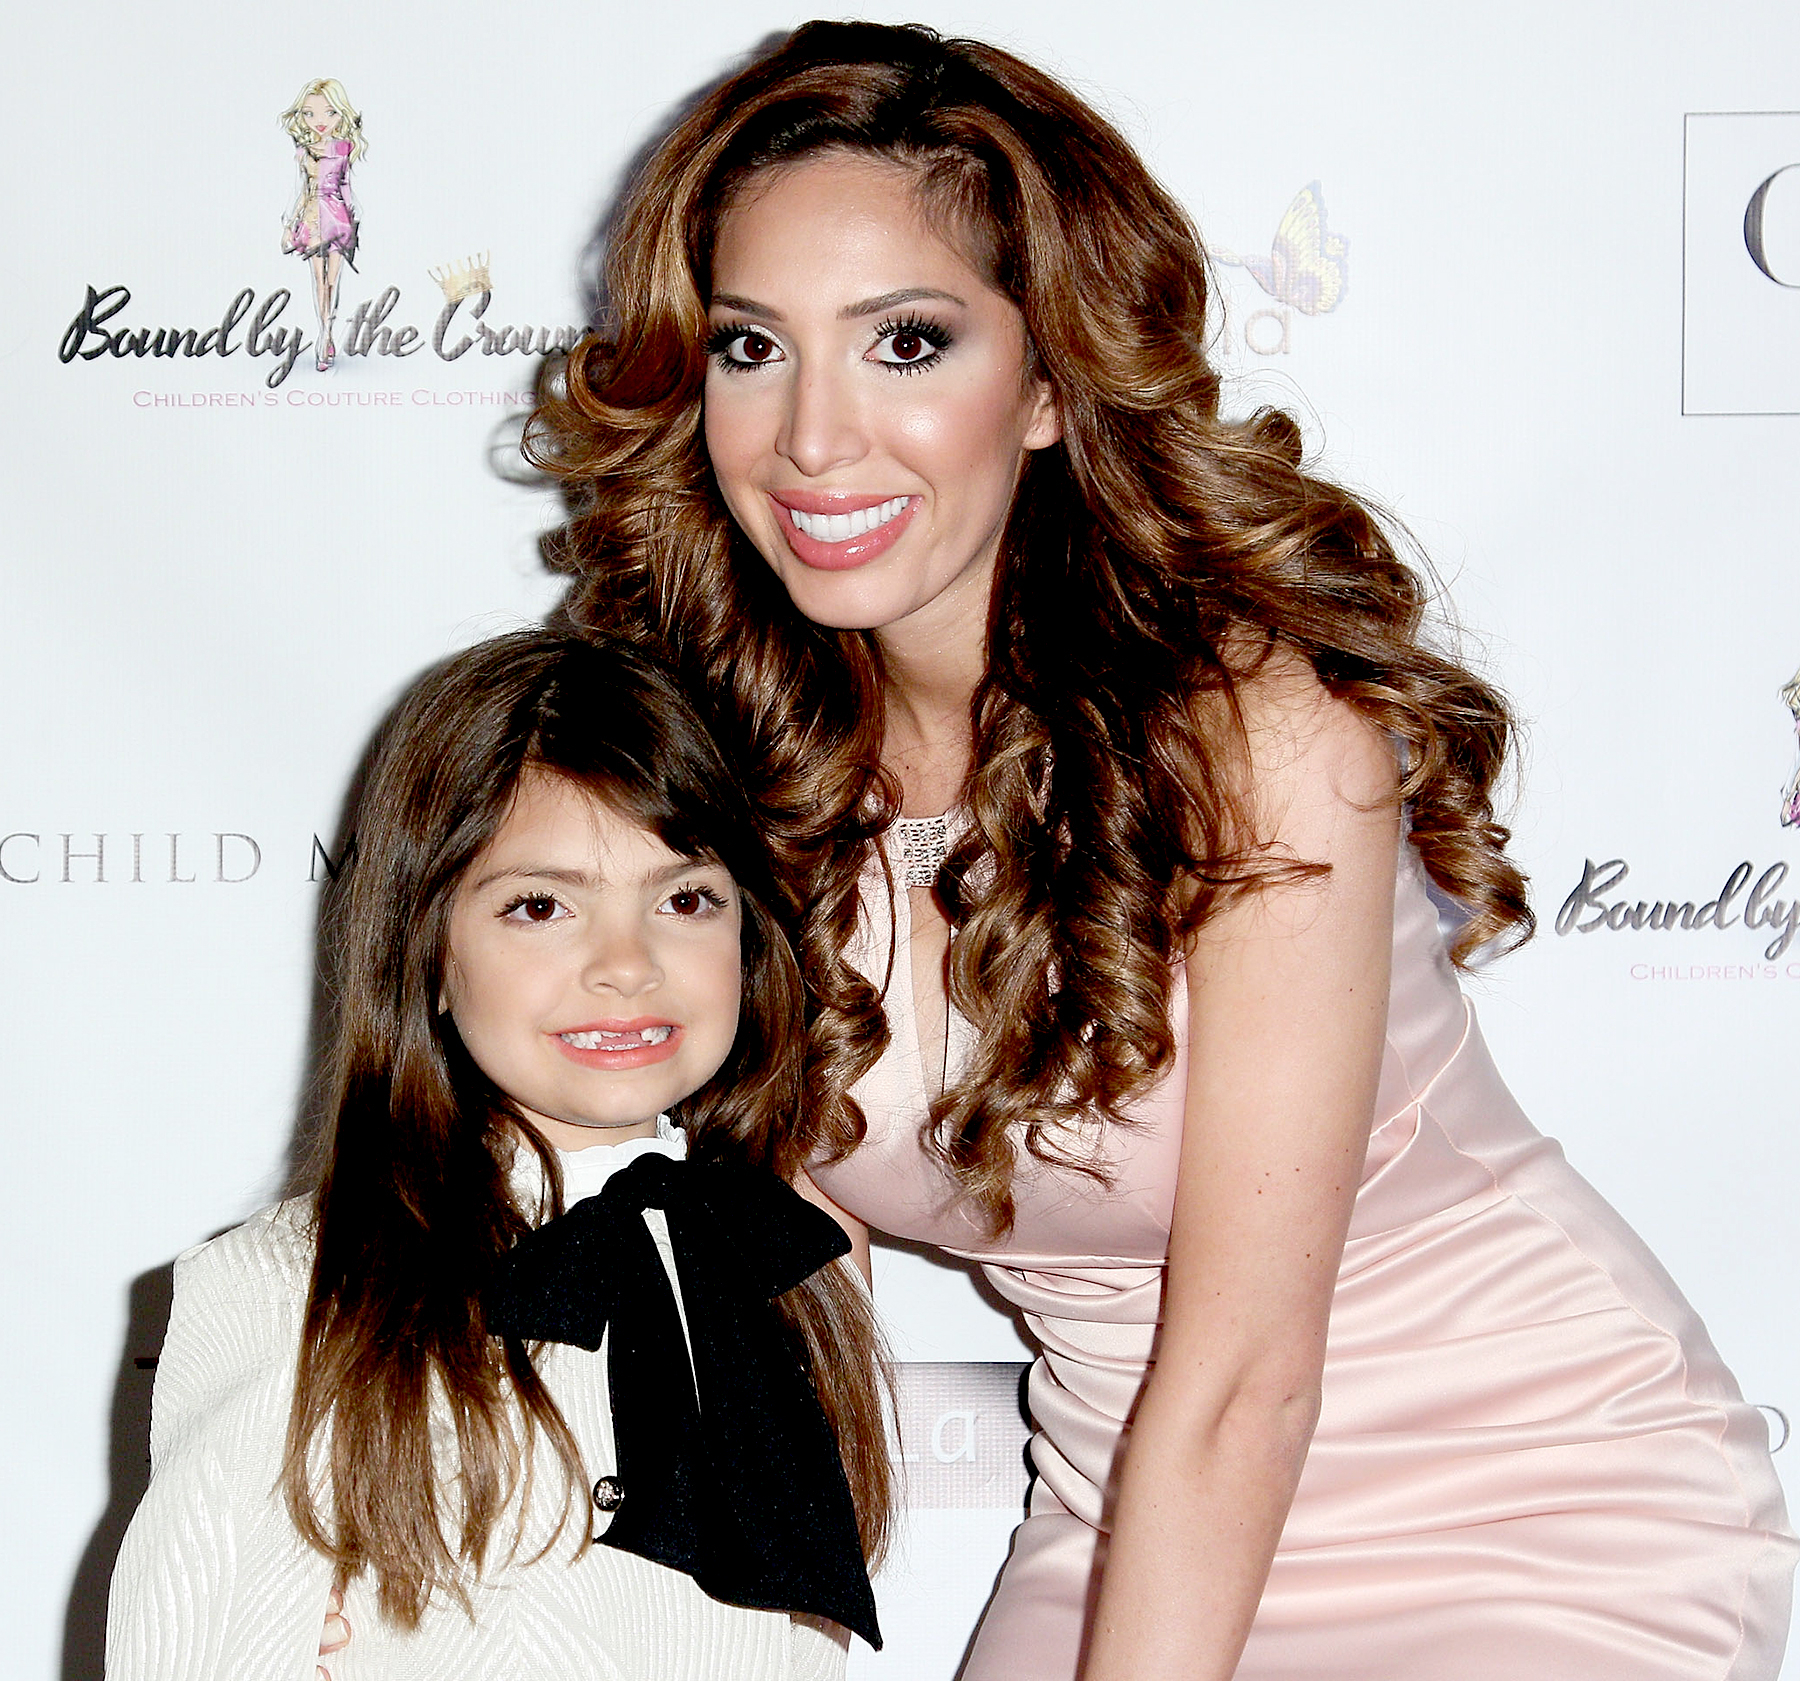 Farrah Abraham and her daughter Sophia Abraham attend Michelle Ann Kids + Bound By the Crown Couture Children's Wear - Fall 2016 New York Fashion Week at Affinia Hotel on February 13, 2016 in New York City.